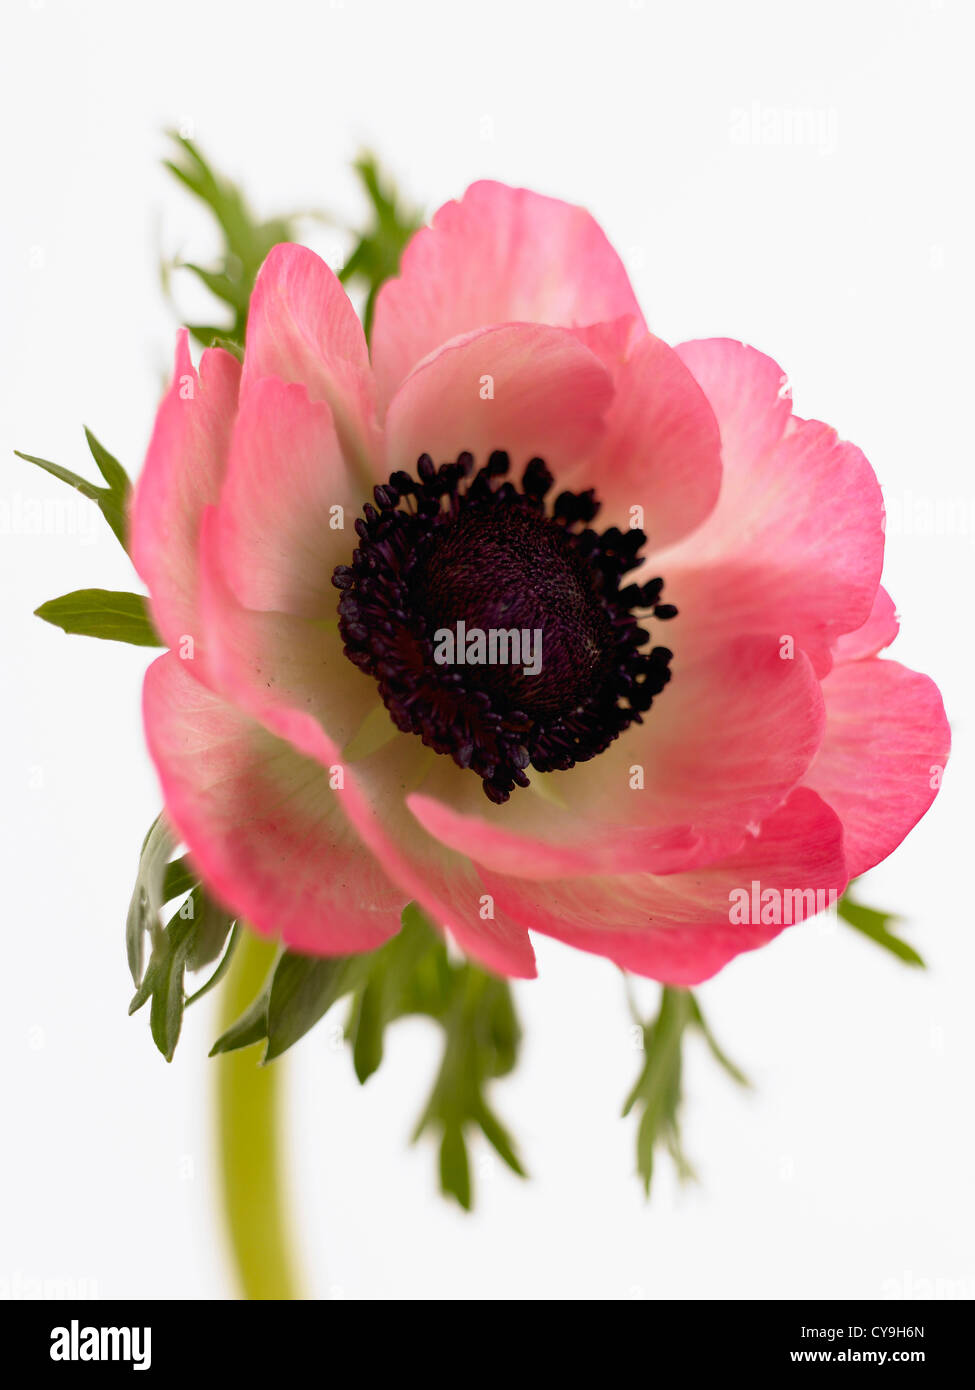 Spring wild flowers anemone coronaria stock photos spring wild anemone coronaria garden anemone single open pink flower on a stem against a white mightylinksfo